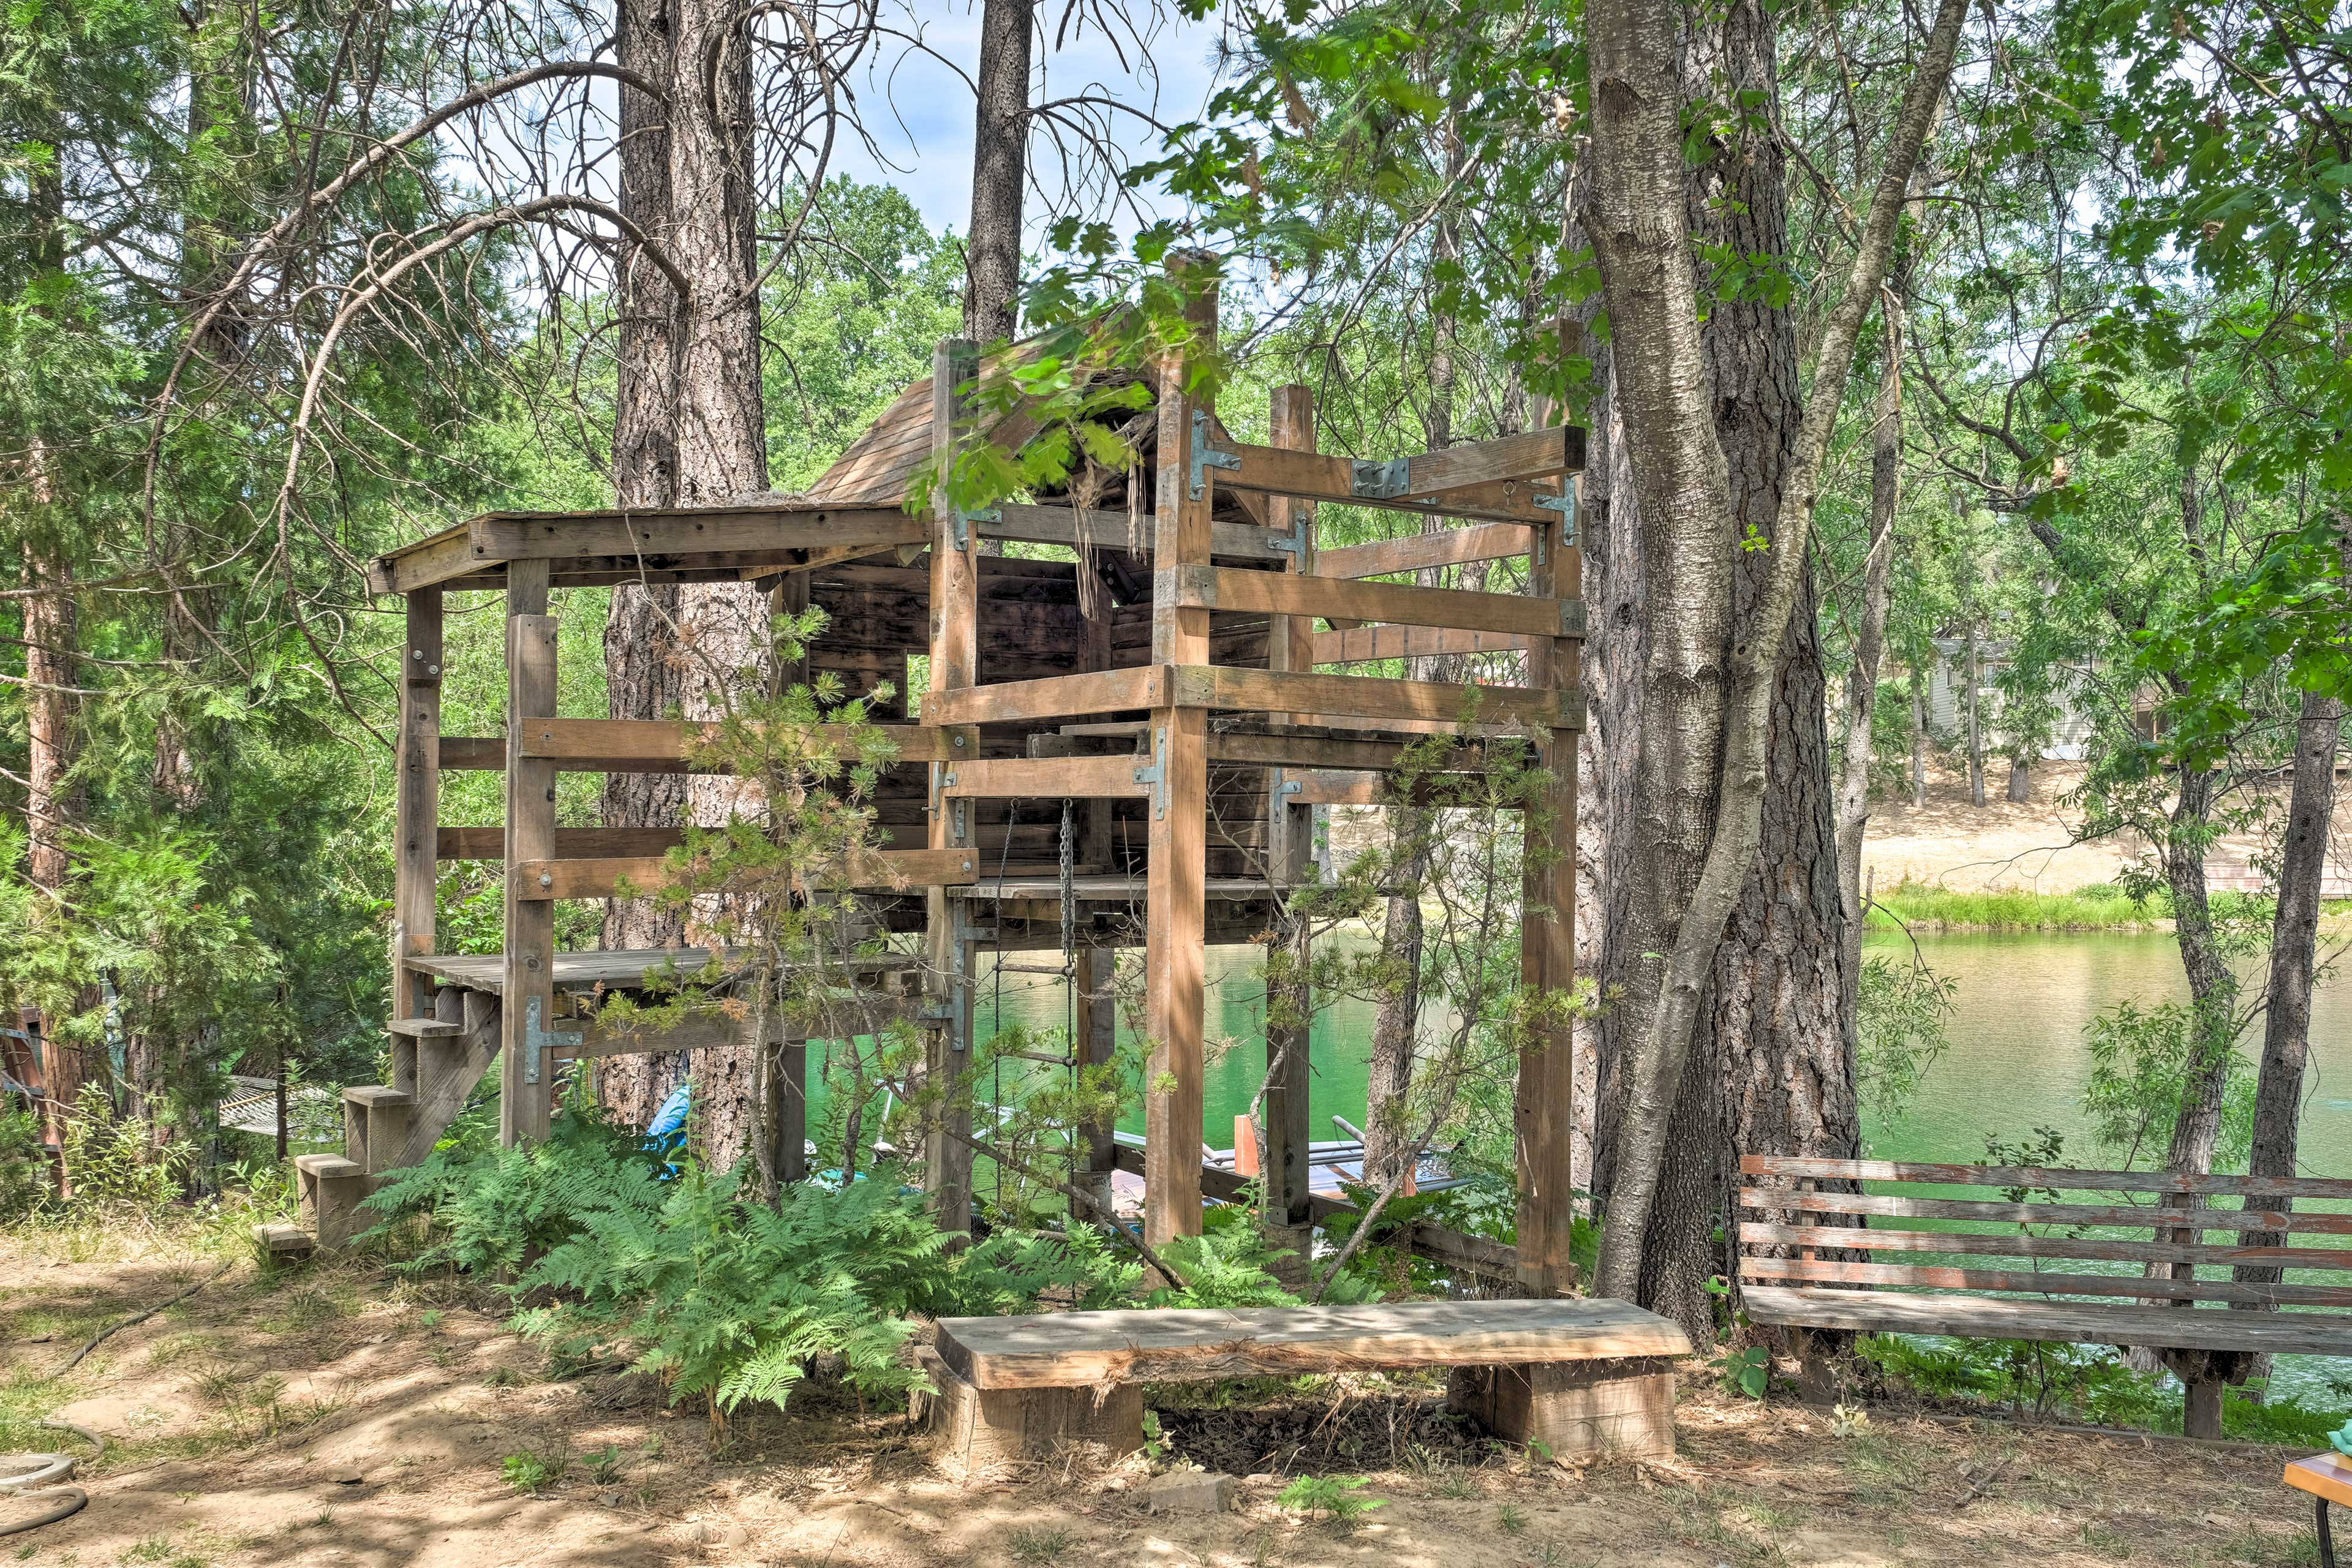 Nearby Treehouse